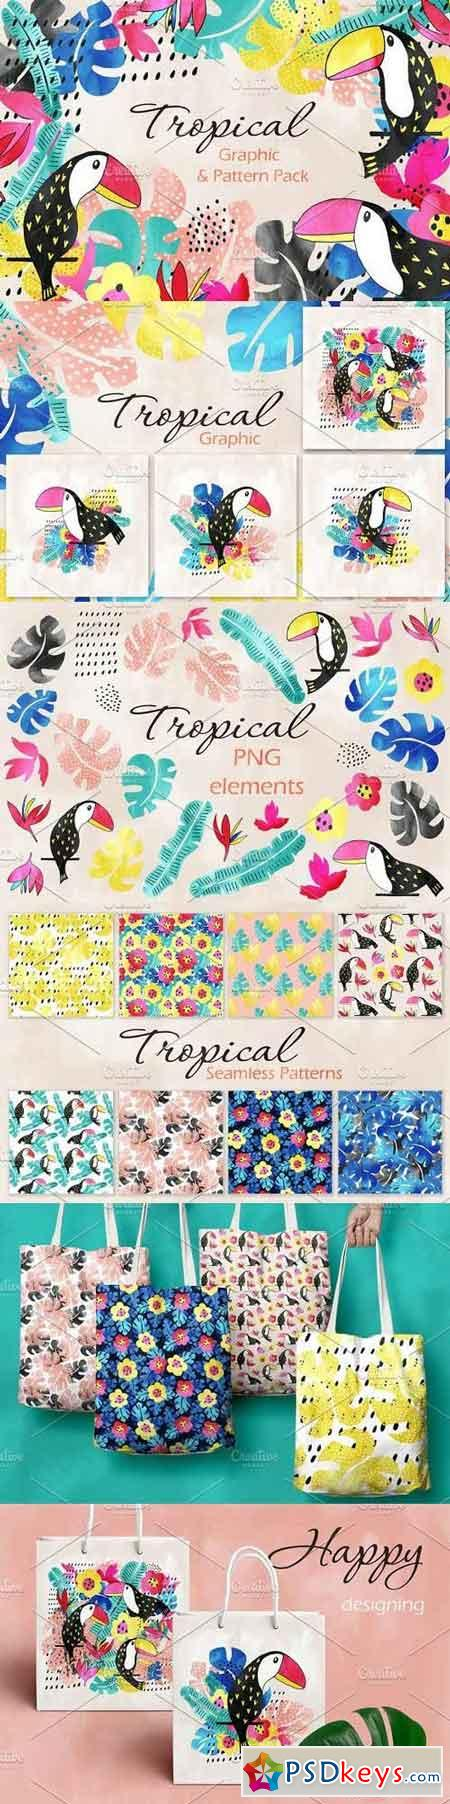 Tropical 1488871